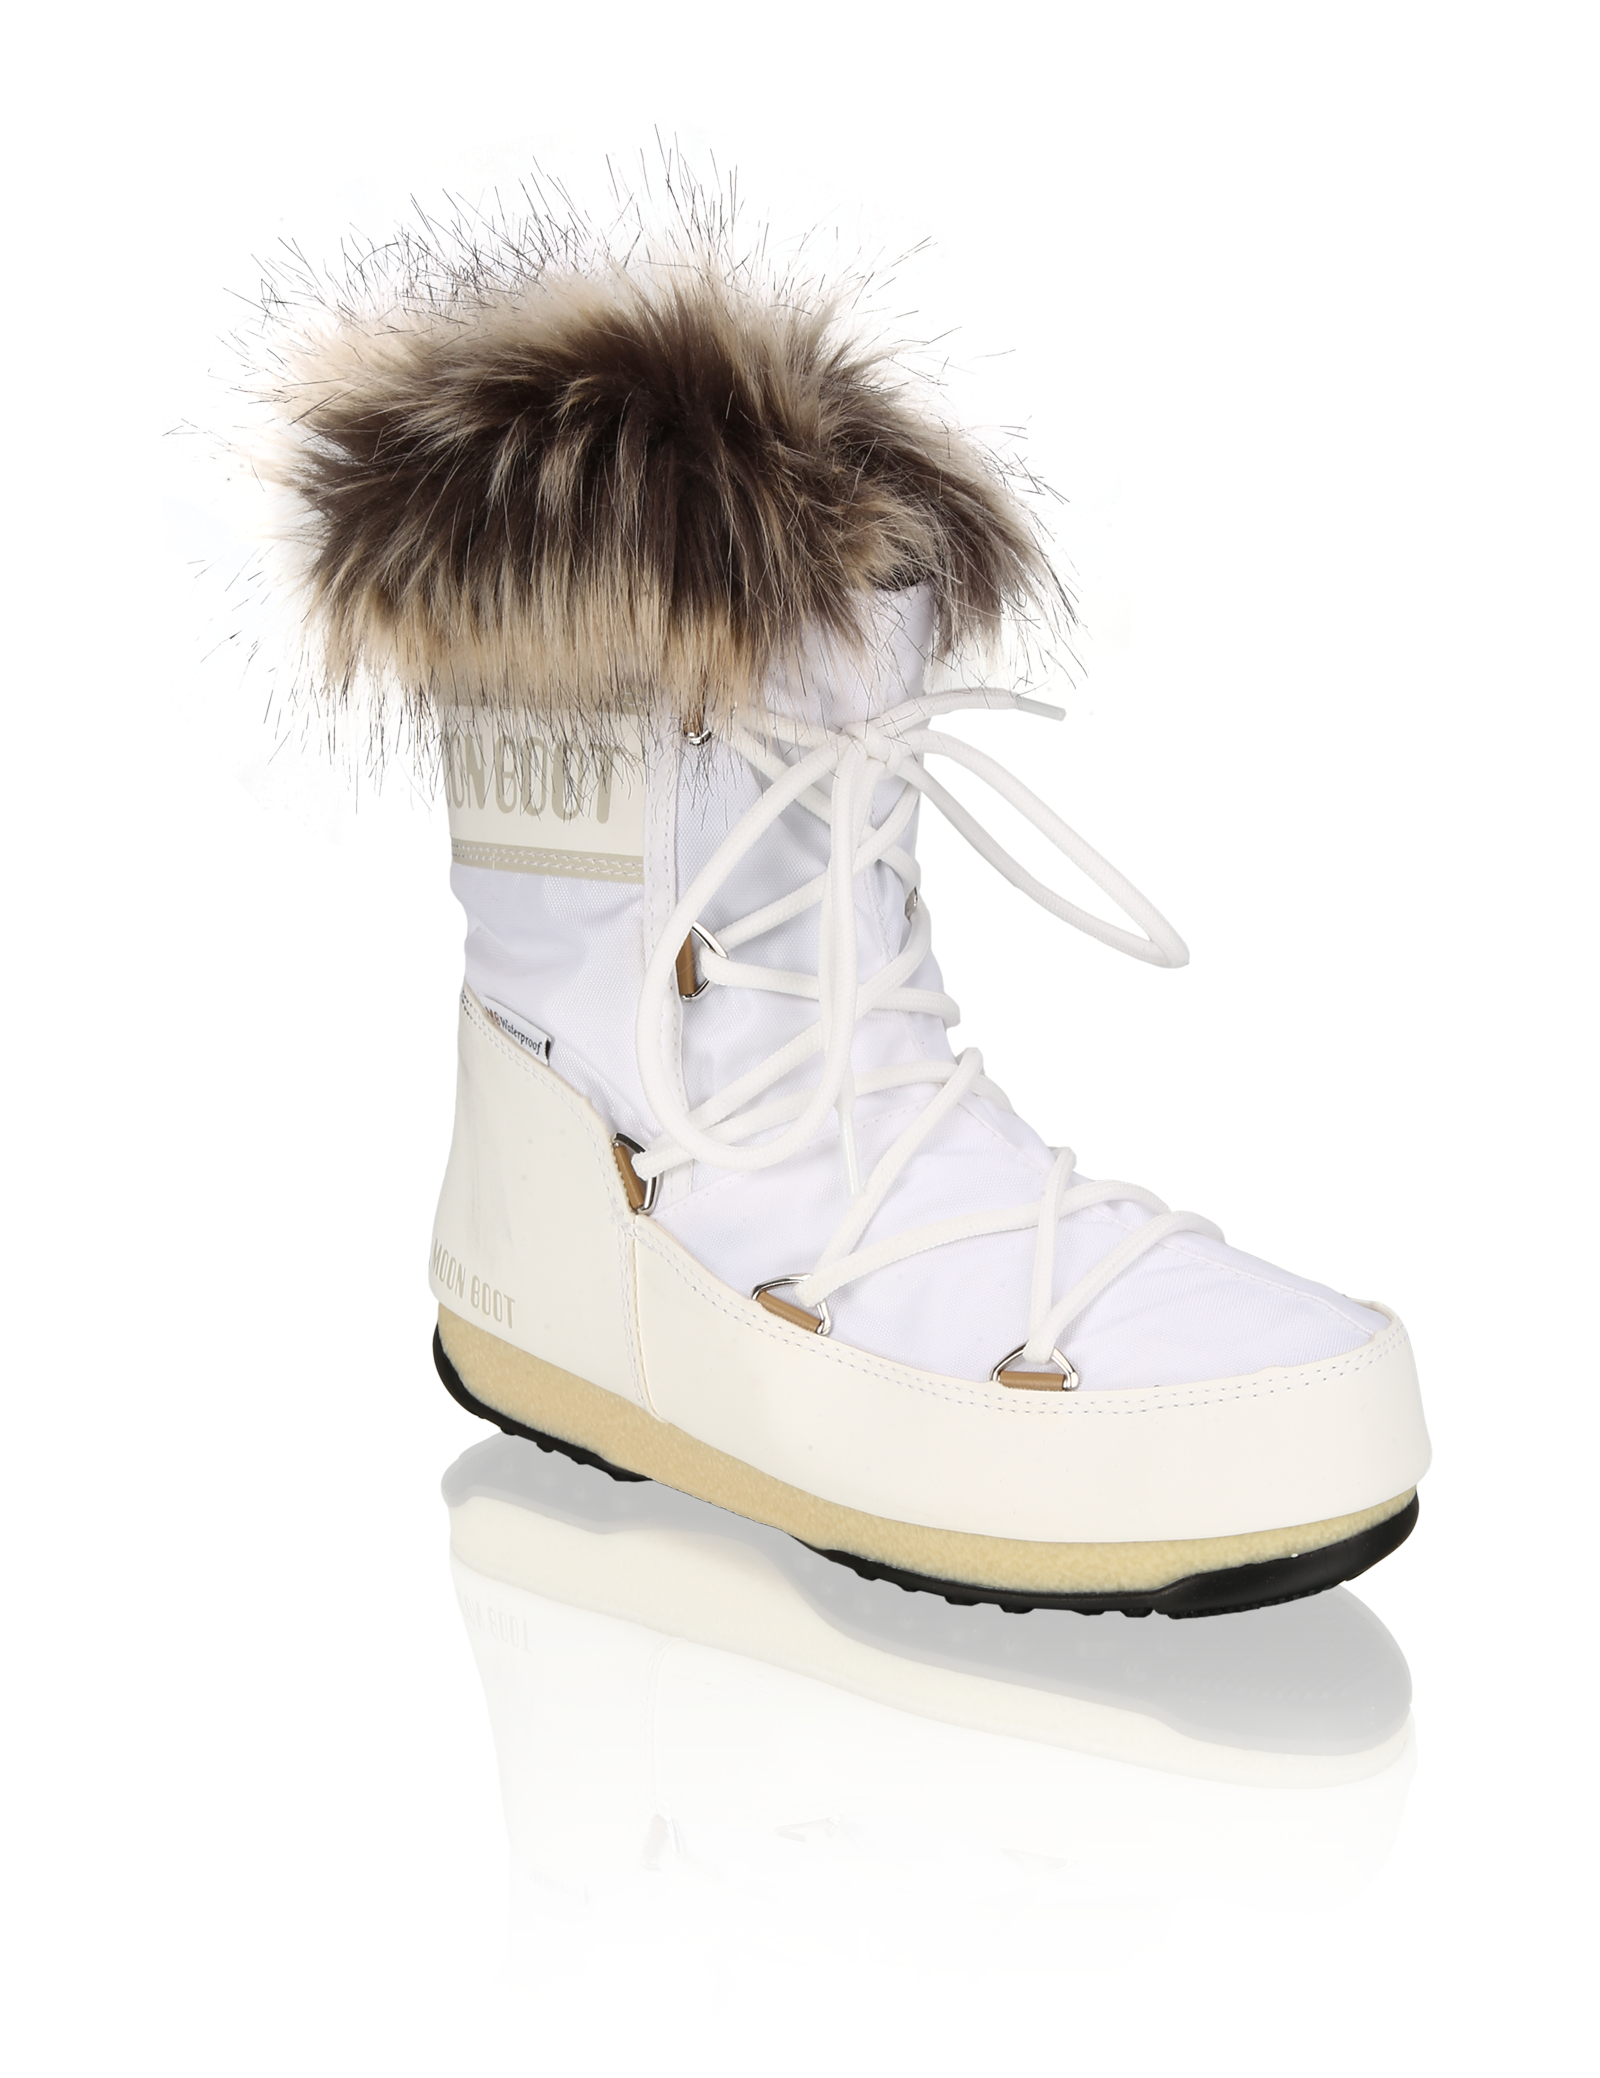 Stiefel - MOON BOOT MONACO LOW WP 2 weiss  - Onlineshop HUMANIC